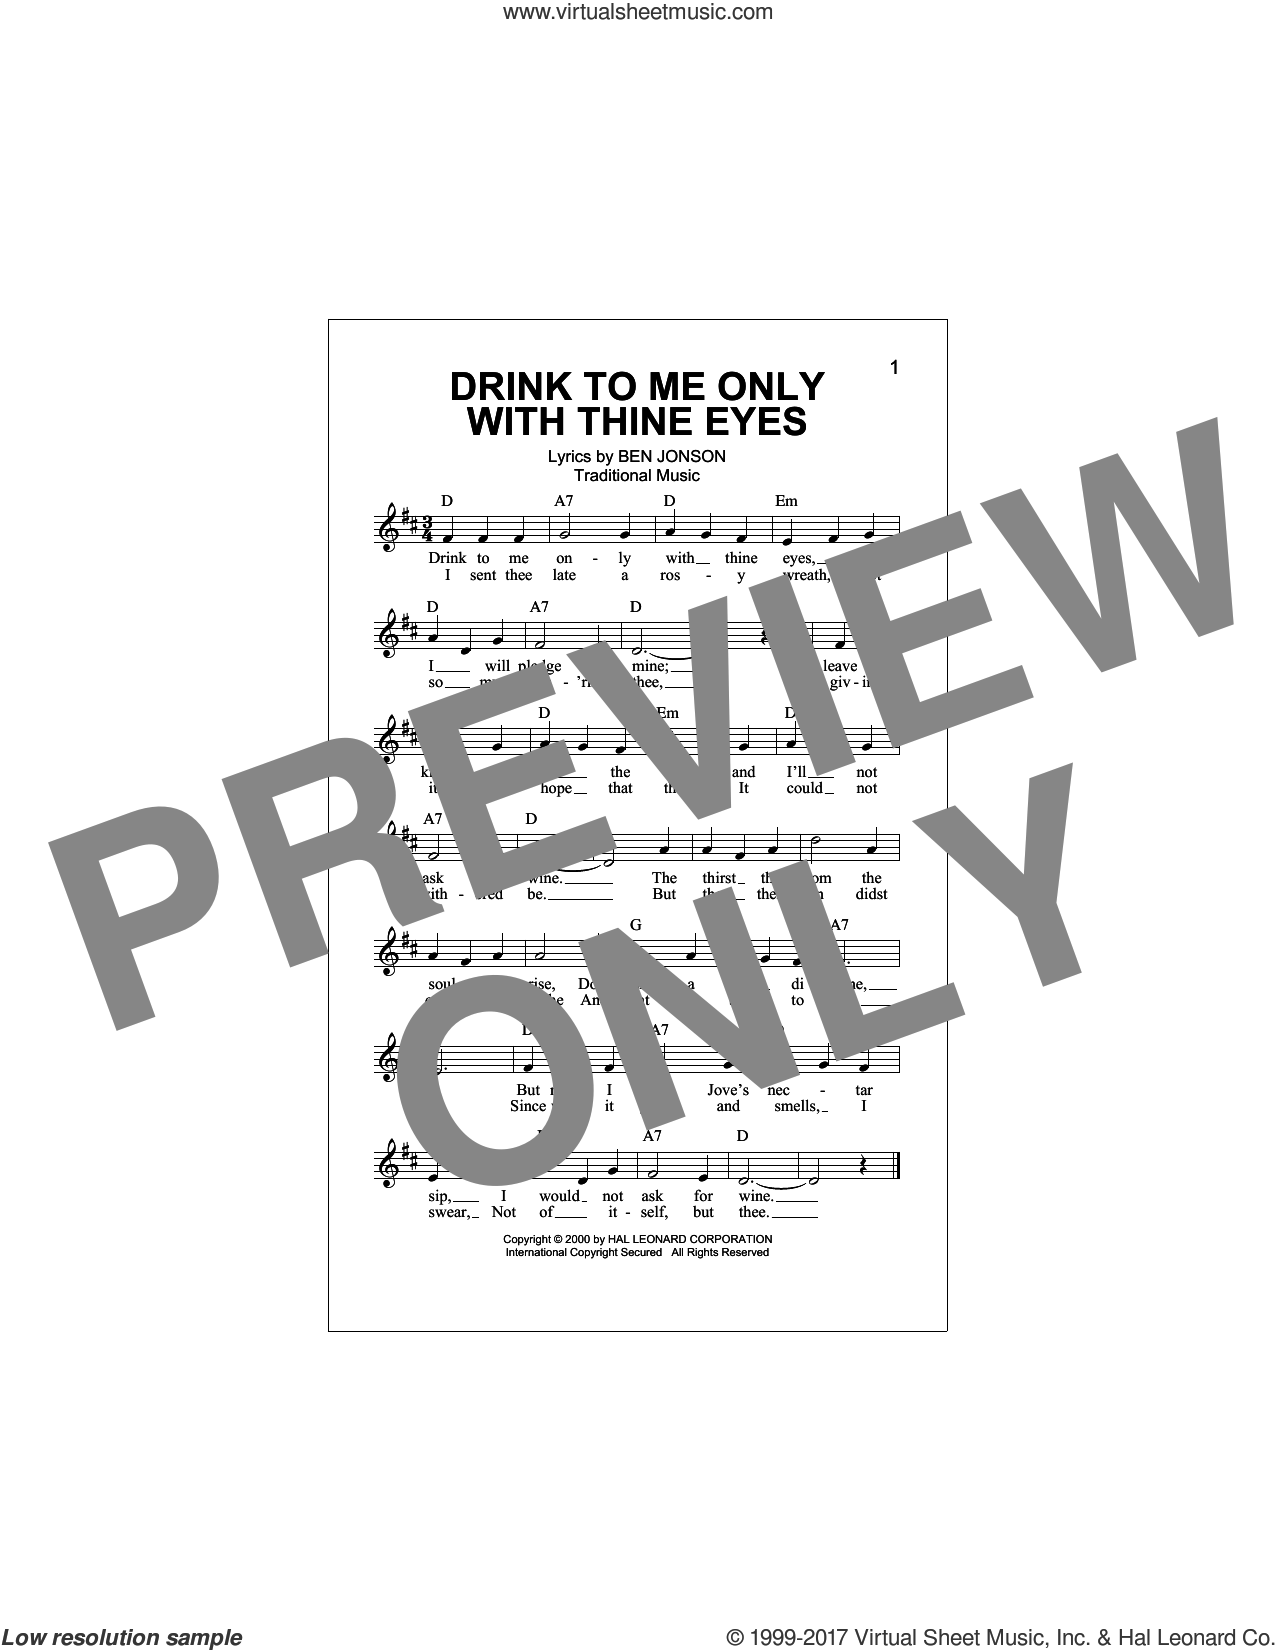 Drink To Me Only With Thine Eyes sheet music for voice and other instruments (fake book) by Traditional Music and Ben Jonson, intermediate skill level